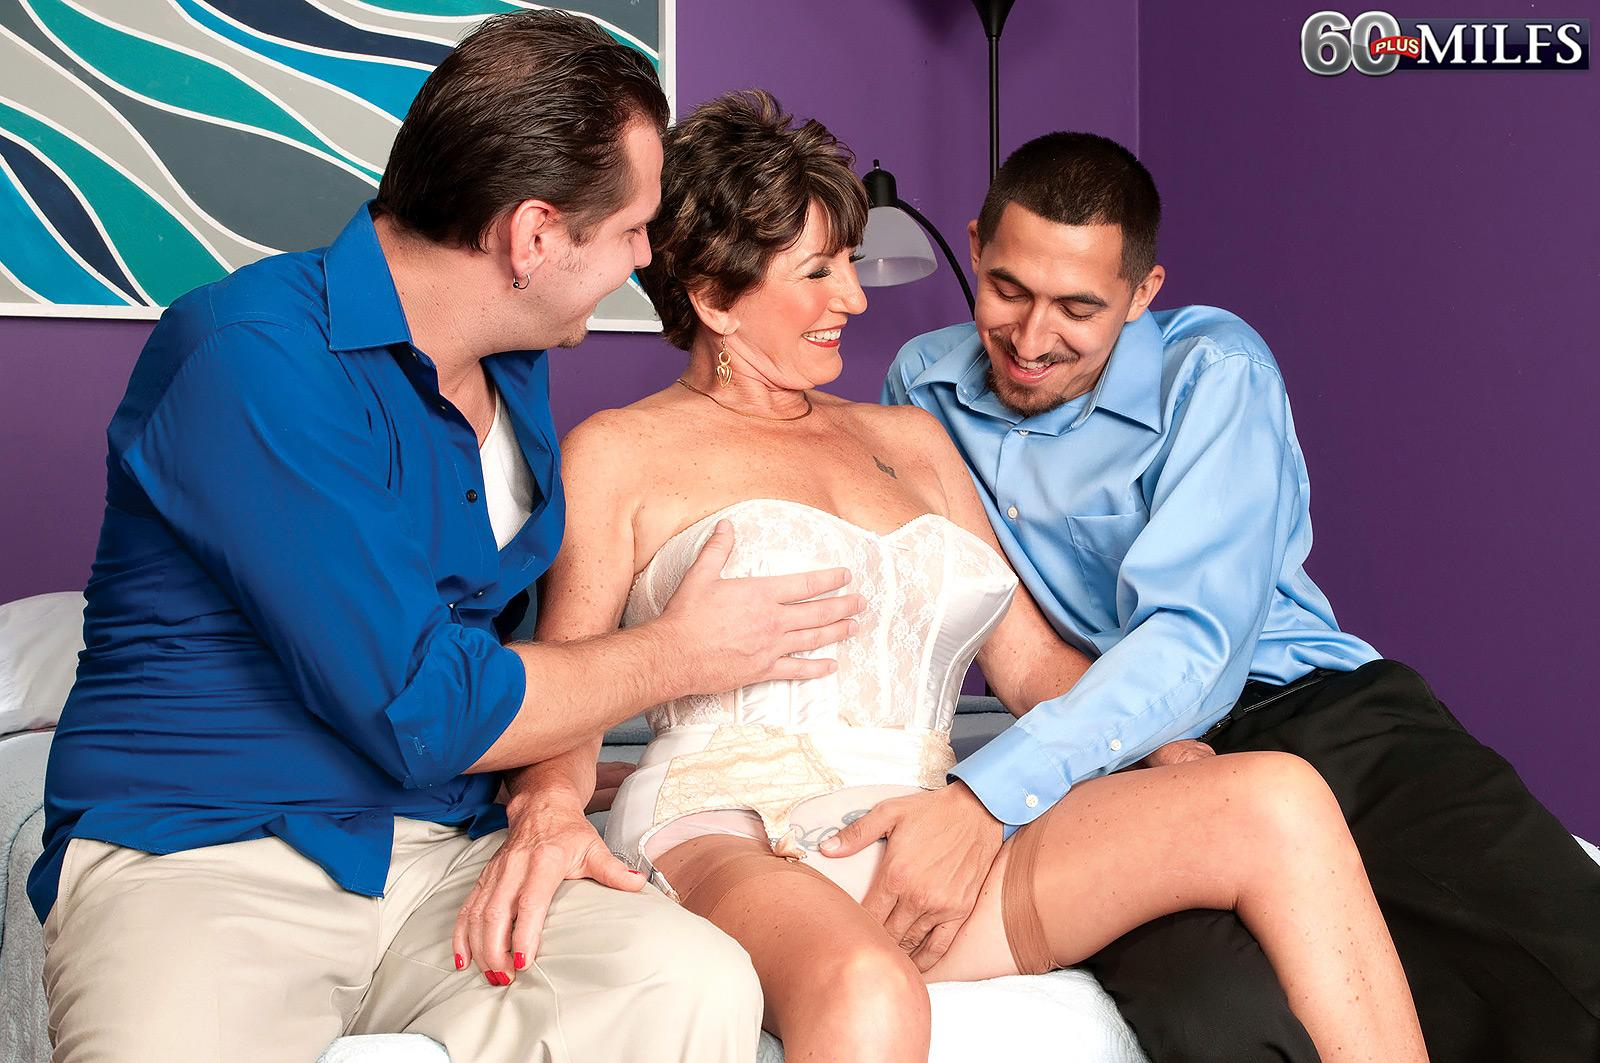 Lingerie adorned over sixty MILF Bea Cummins milking off enormous rods in MMF threeway